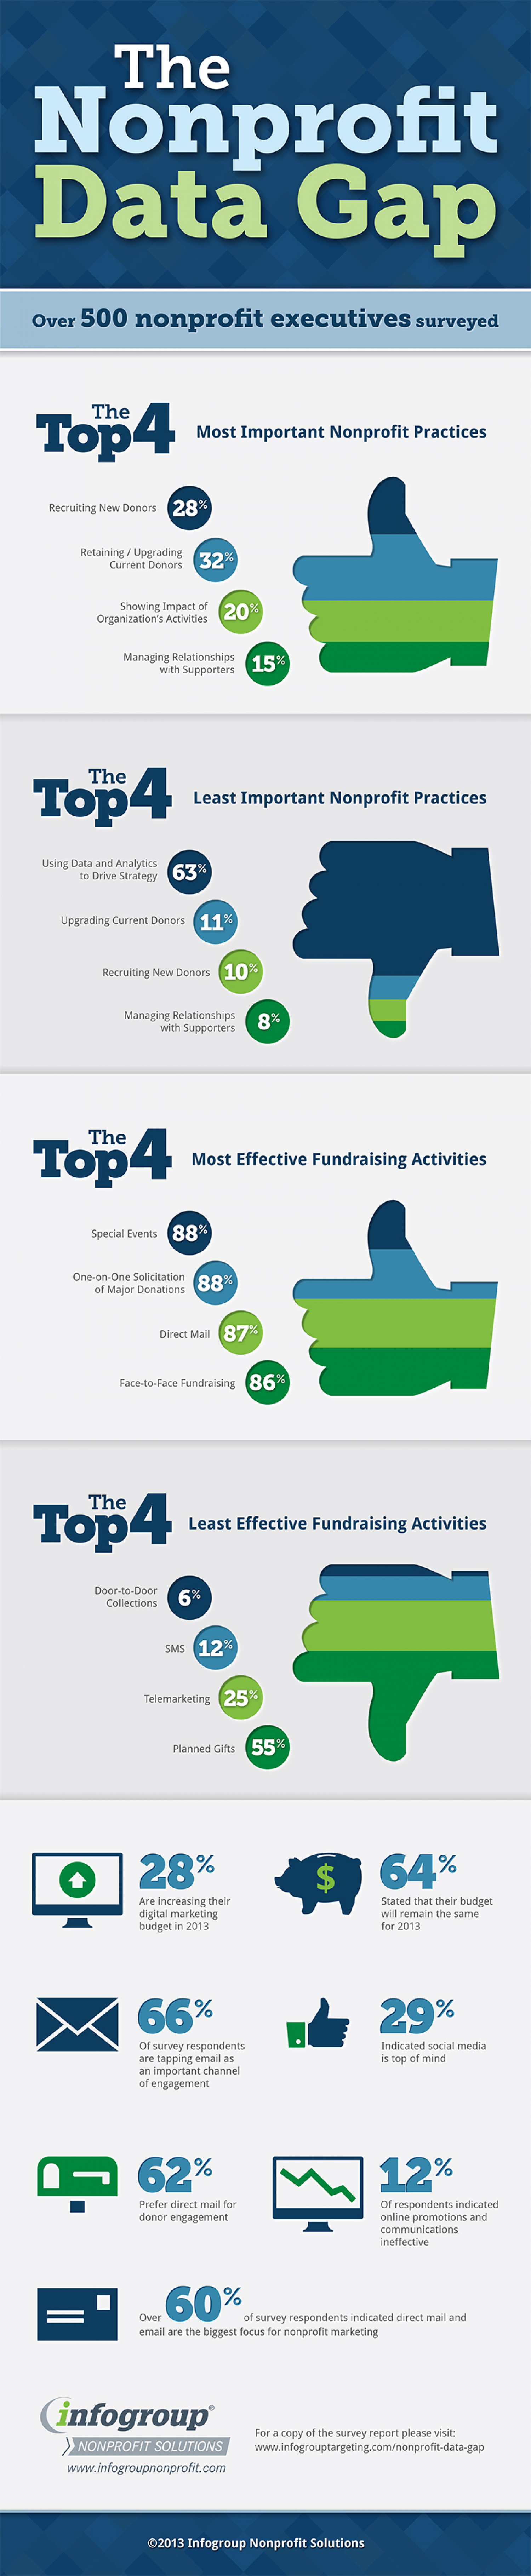 The Nonprofit Data Gap Infographic